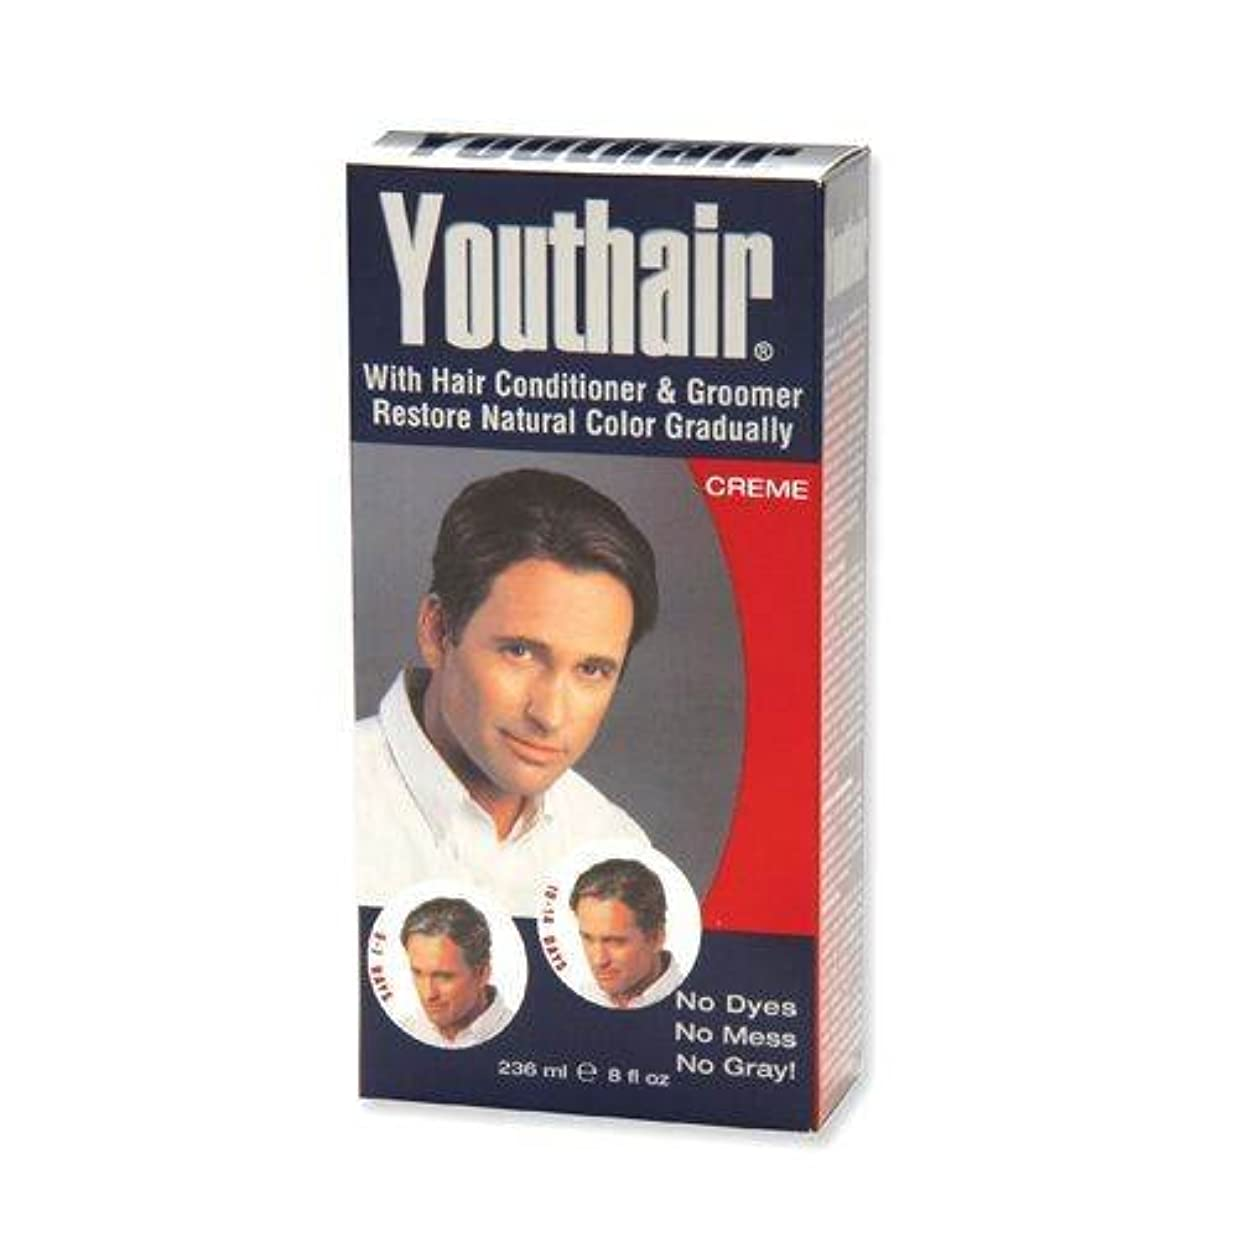 健康的セッション有効なYOUTHAIR Creme for Men with Hair Conditioner & Groomer Restore Natural Color Gradually 8oz/236ml by Youthair